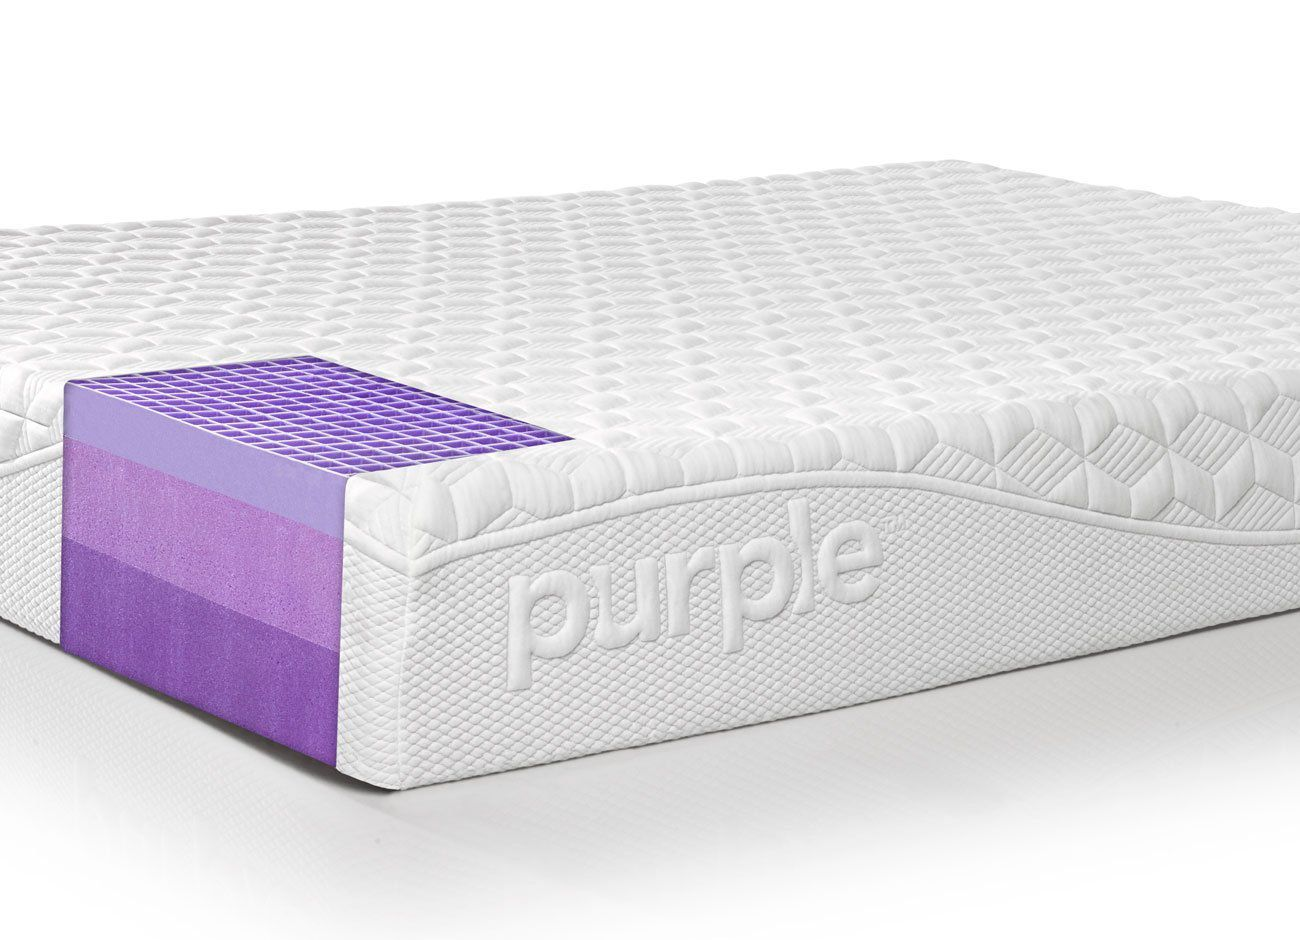 The Best Bed In A Box 2020 Buying A Mattress Online Has Never